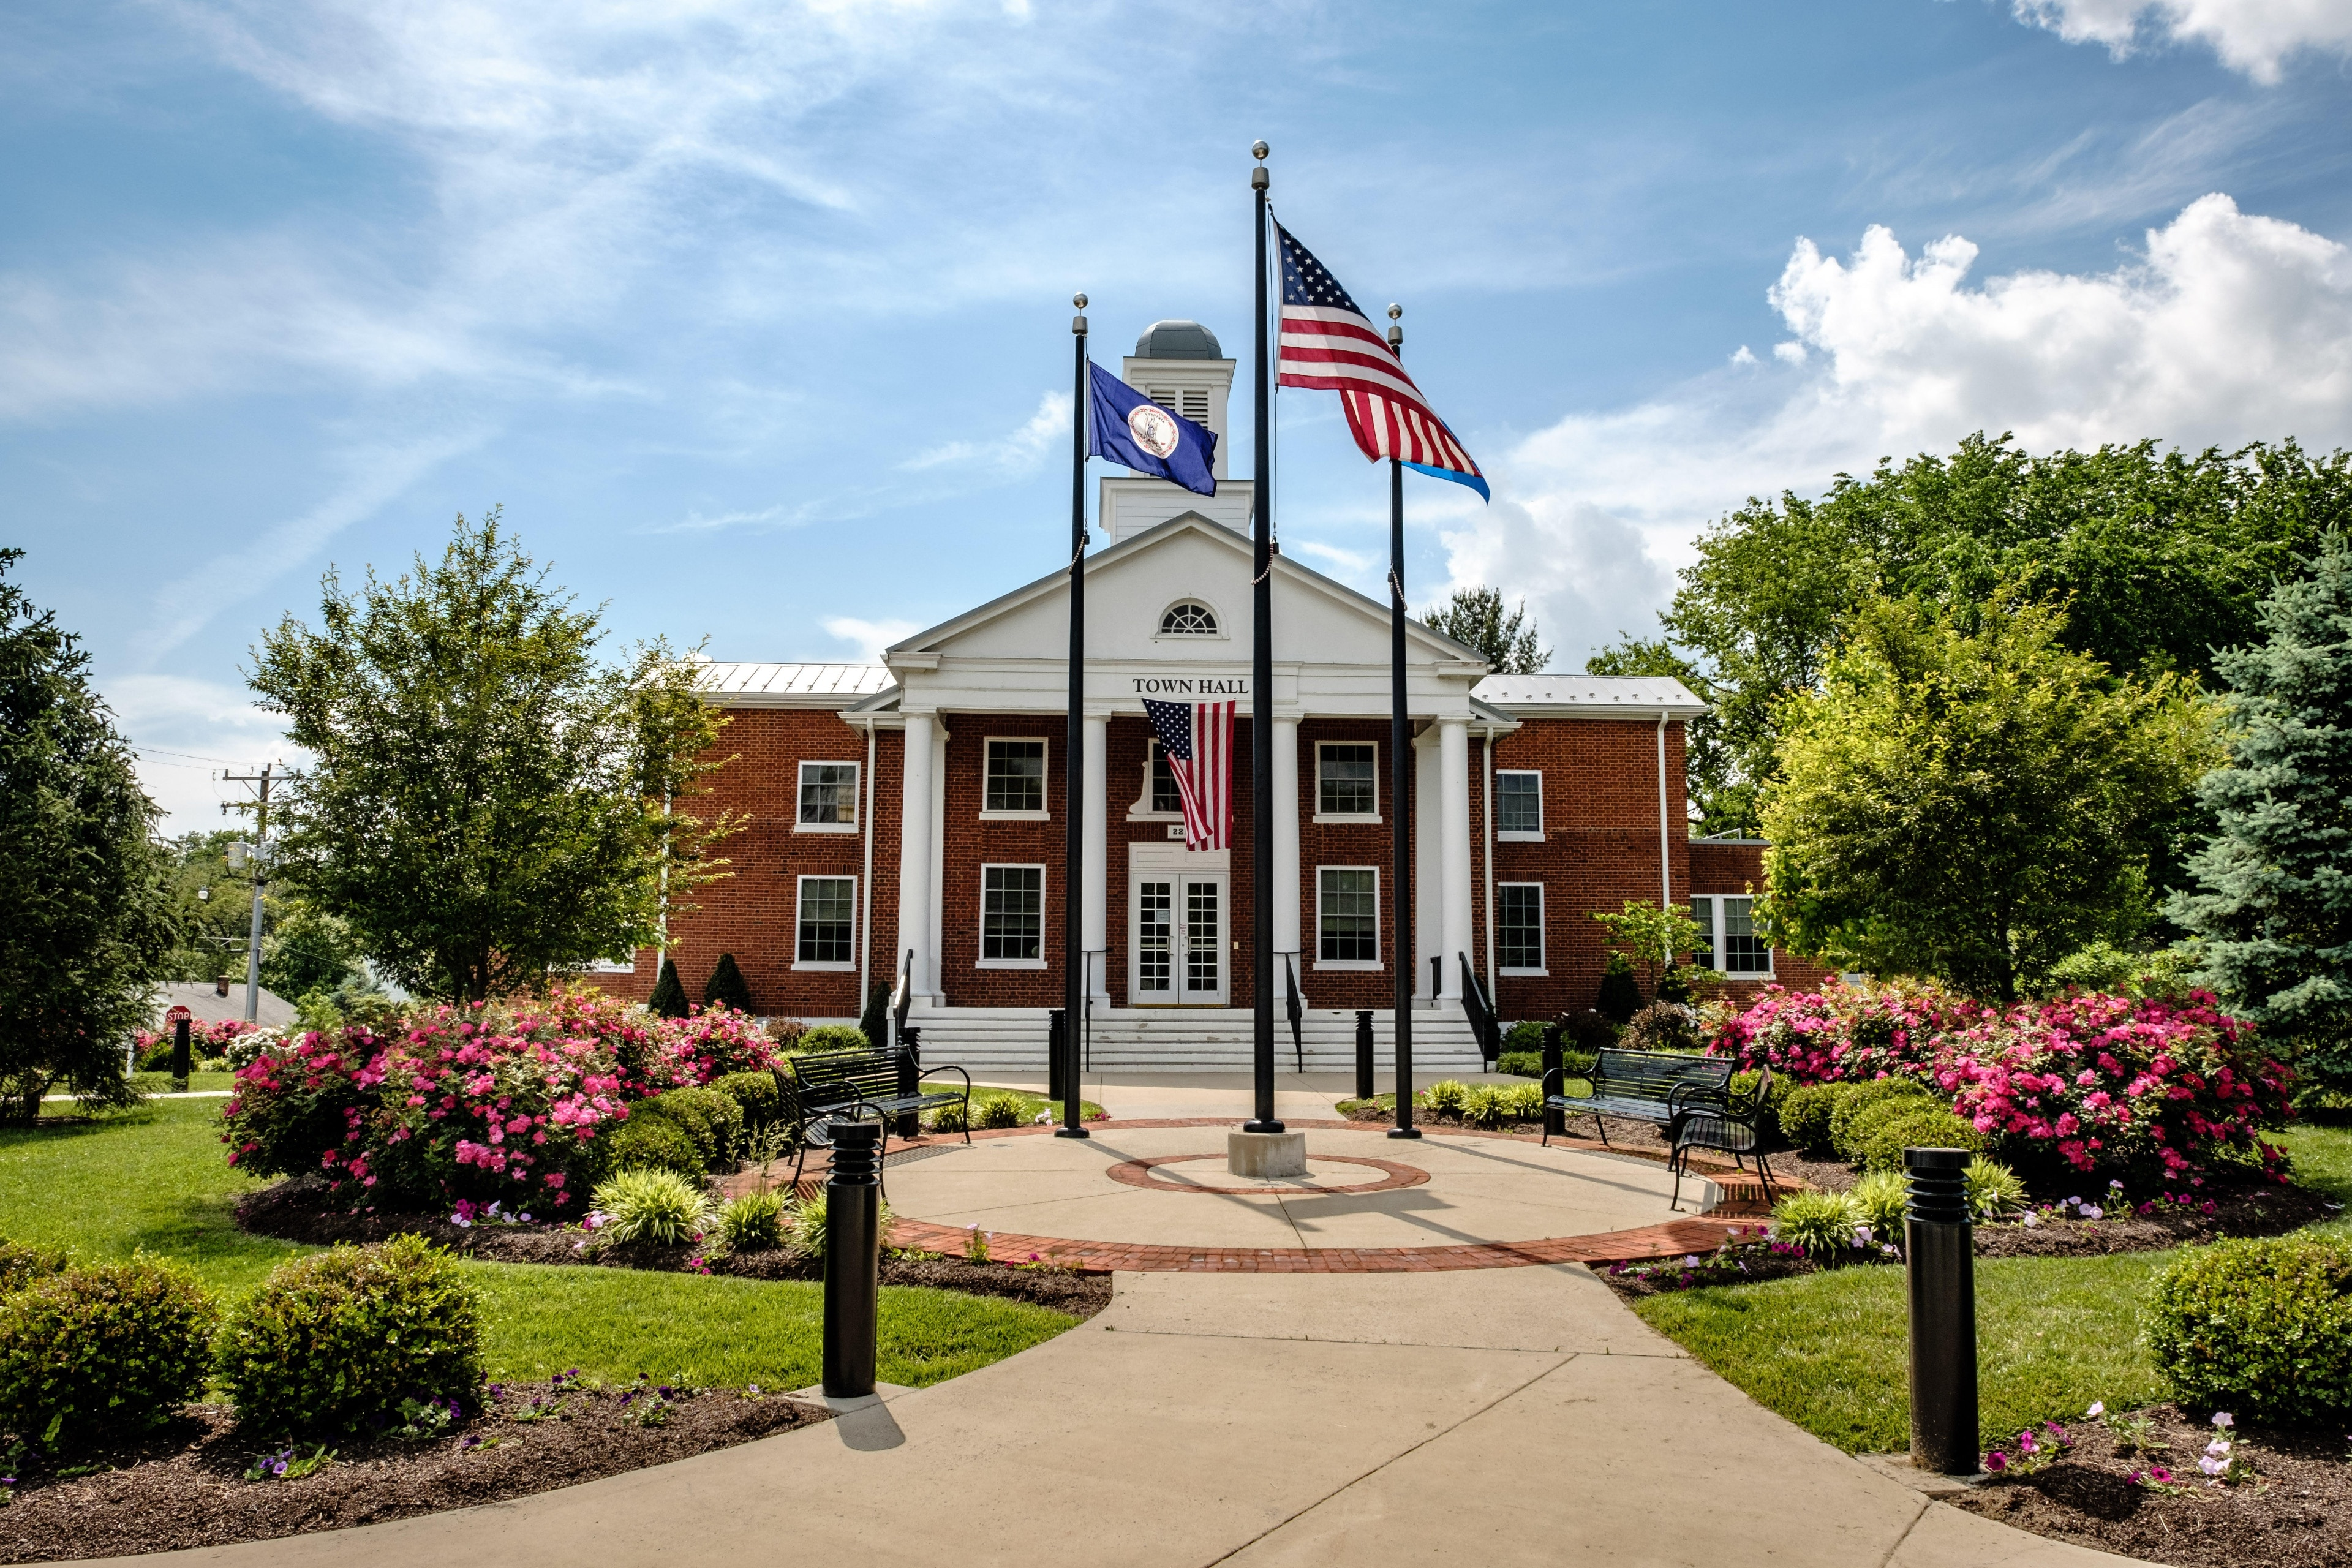 Purcellville, Virginia, United States of America